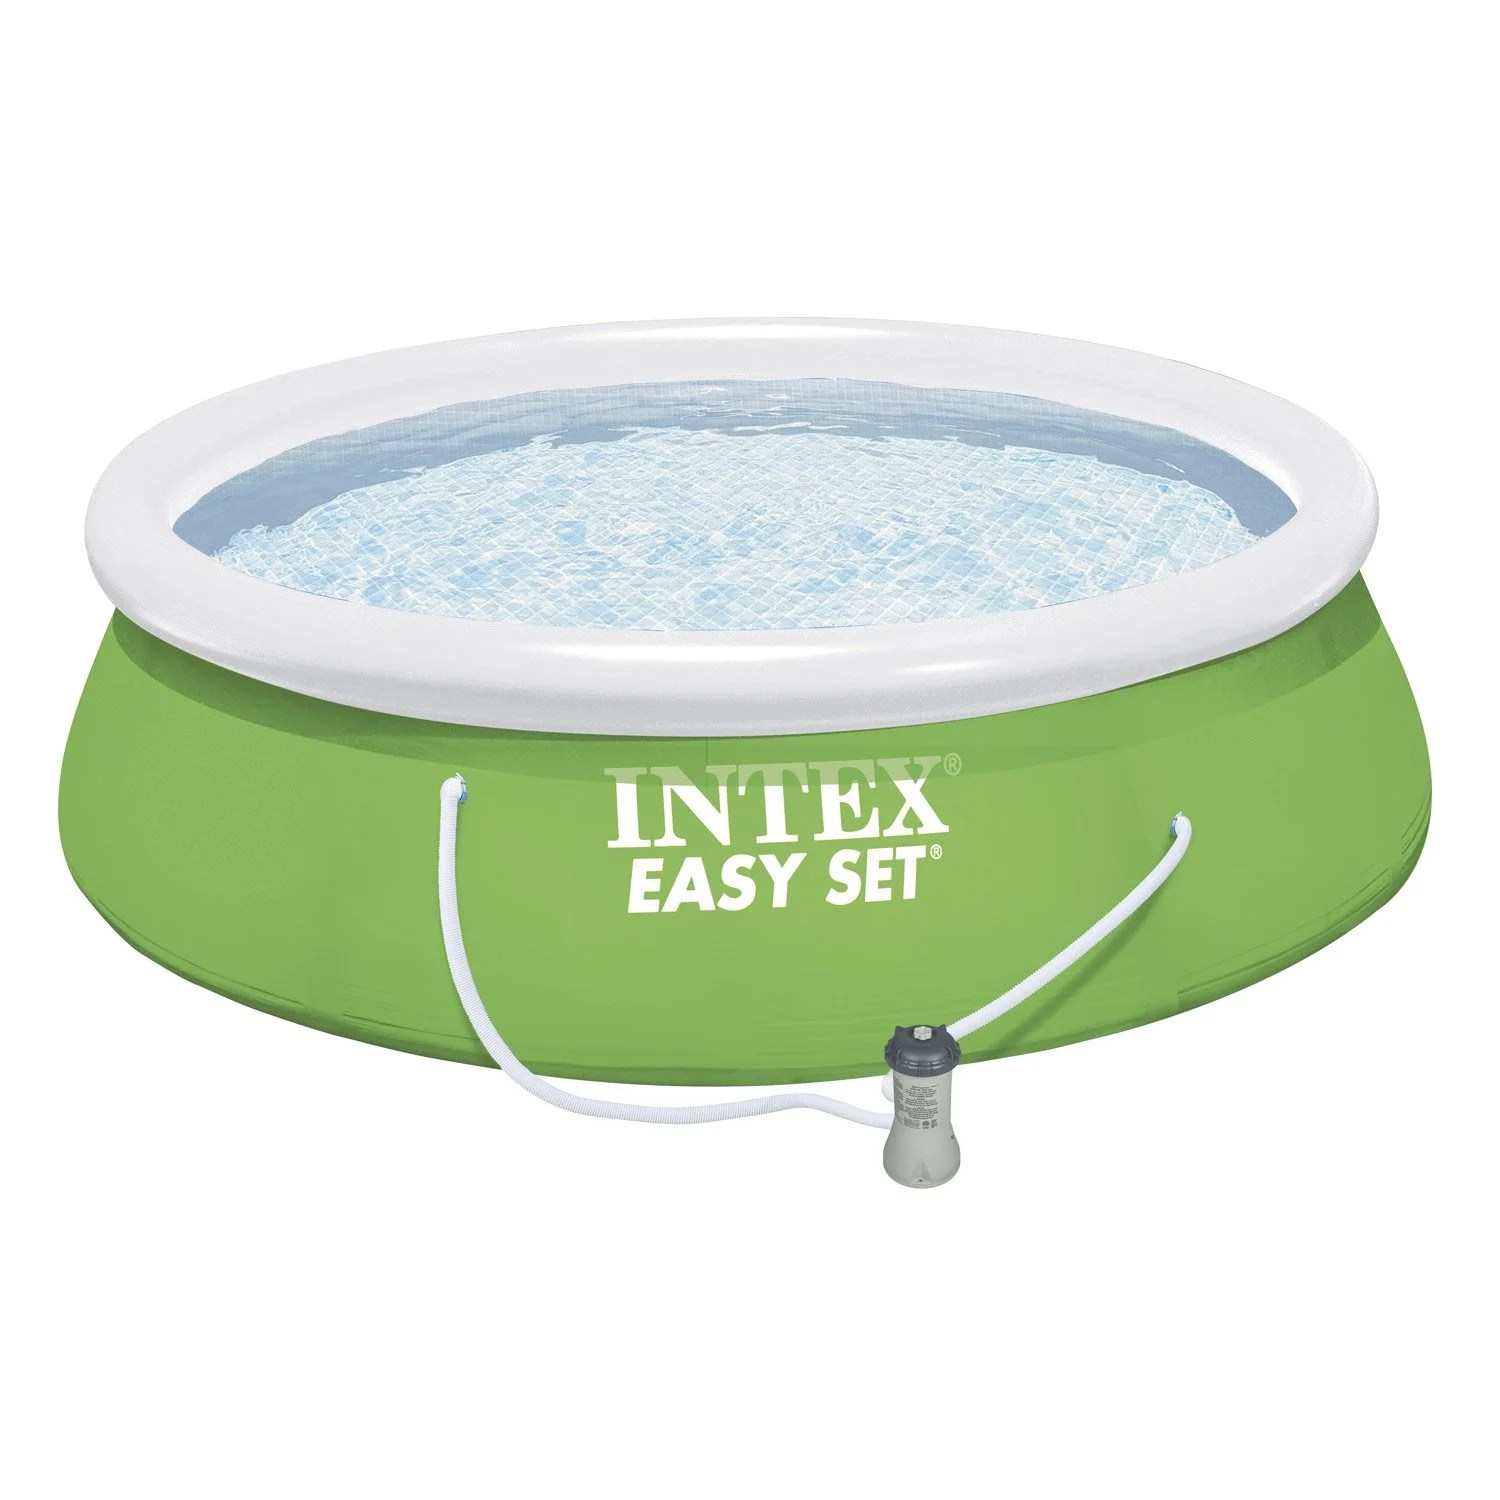 Leroy Merlin Piscine Hors Sol Intex Piscine Hors Sol Autoportante Gonflable Easy Set Intex